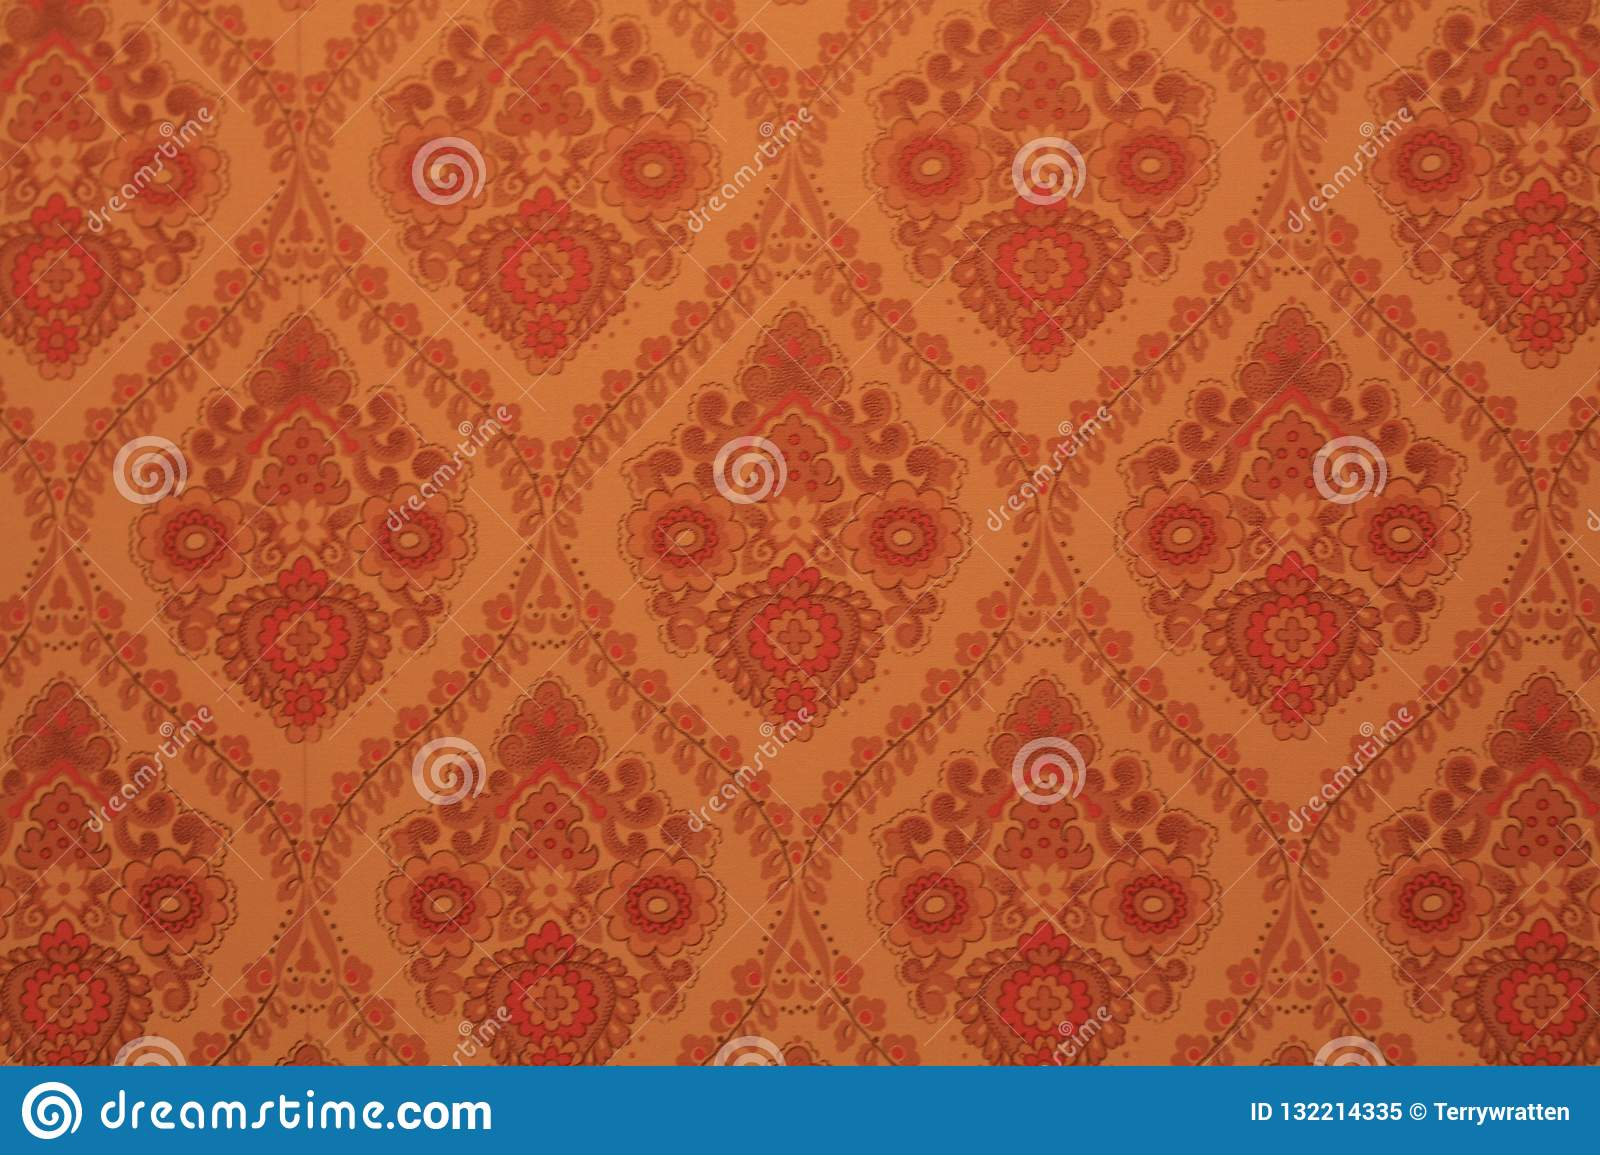 70's wallpaper with repeating paisley pattern